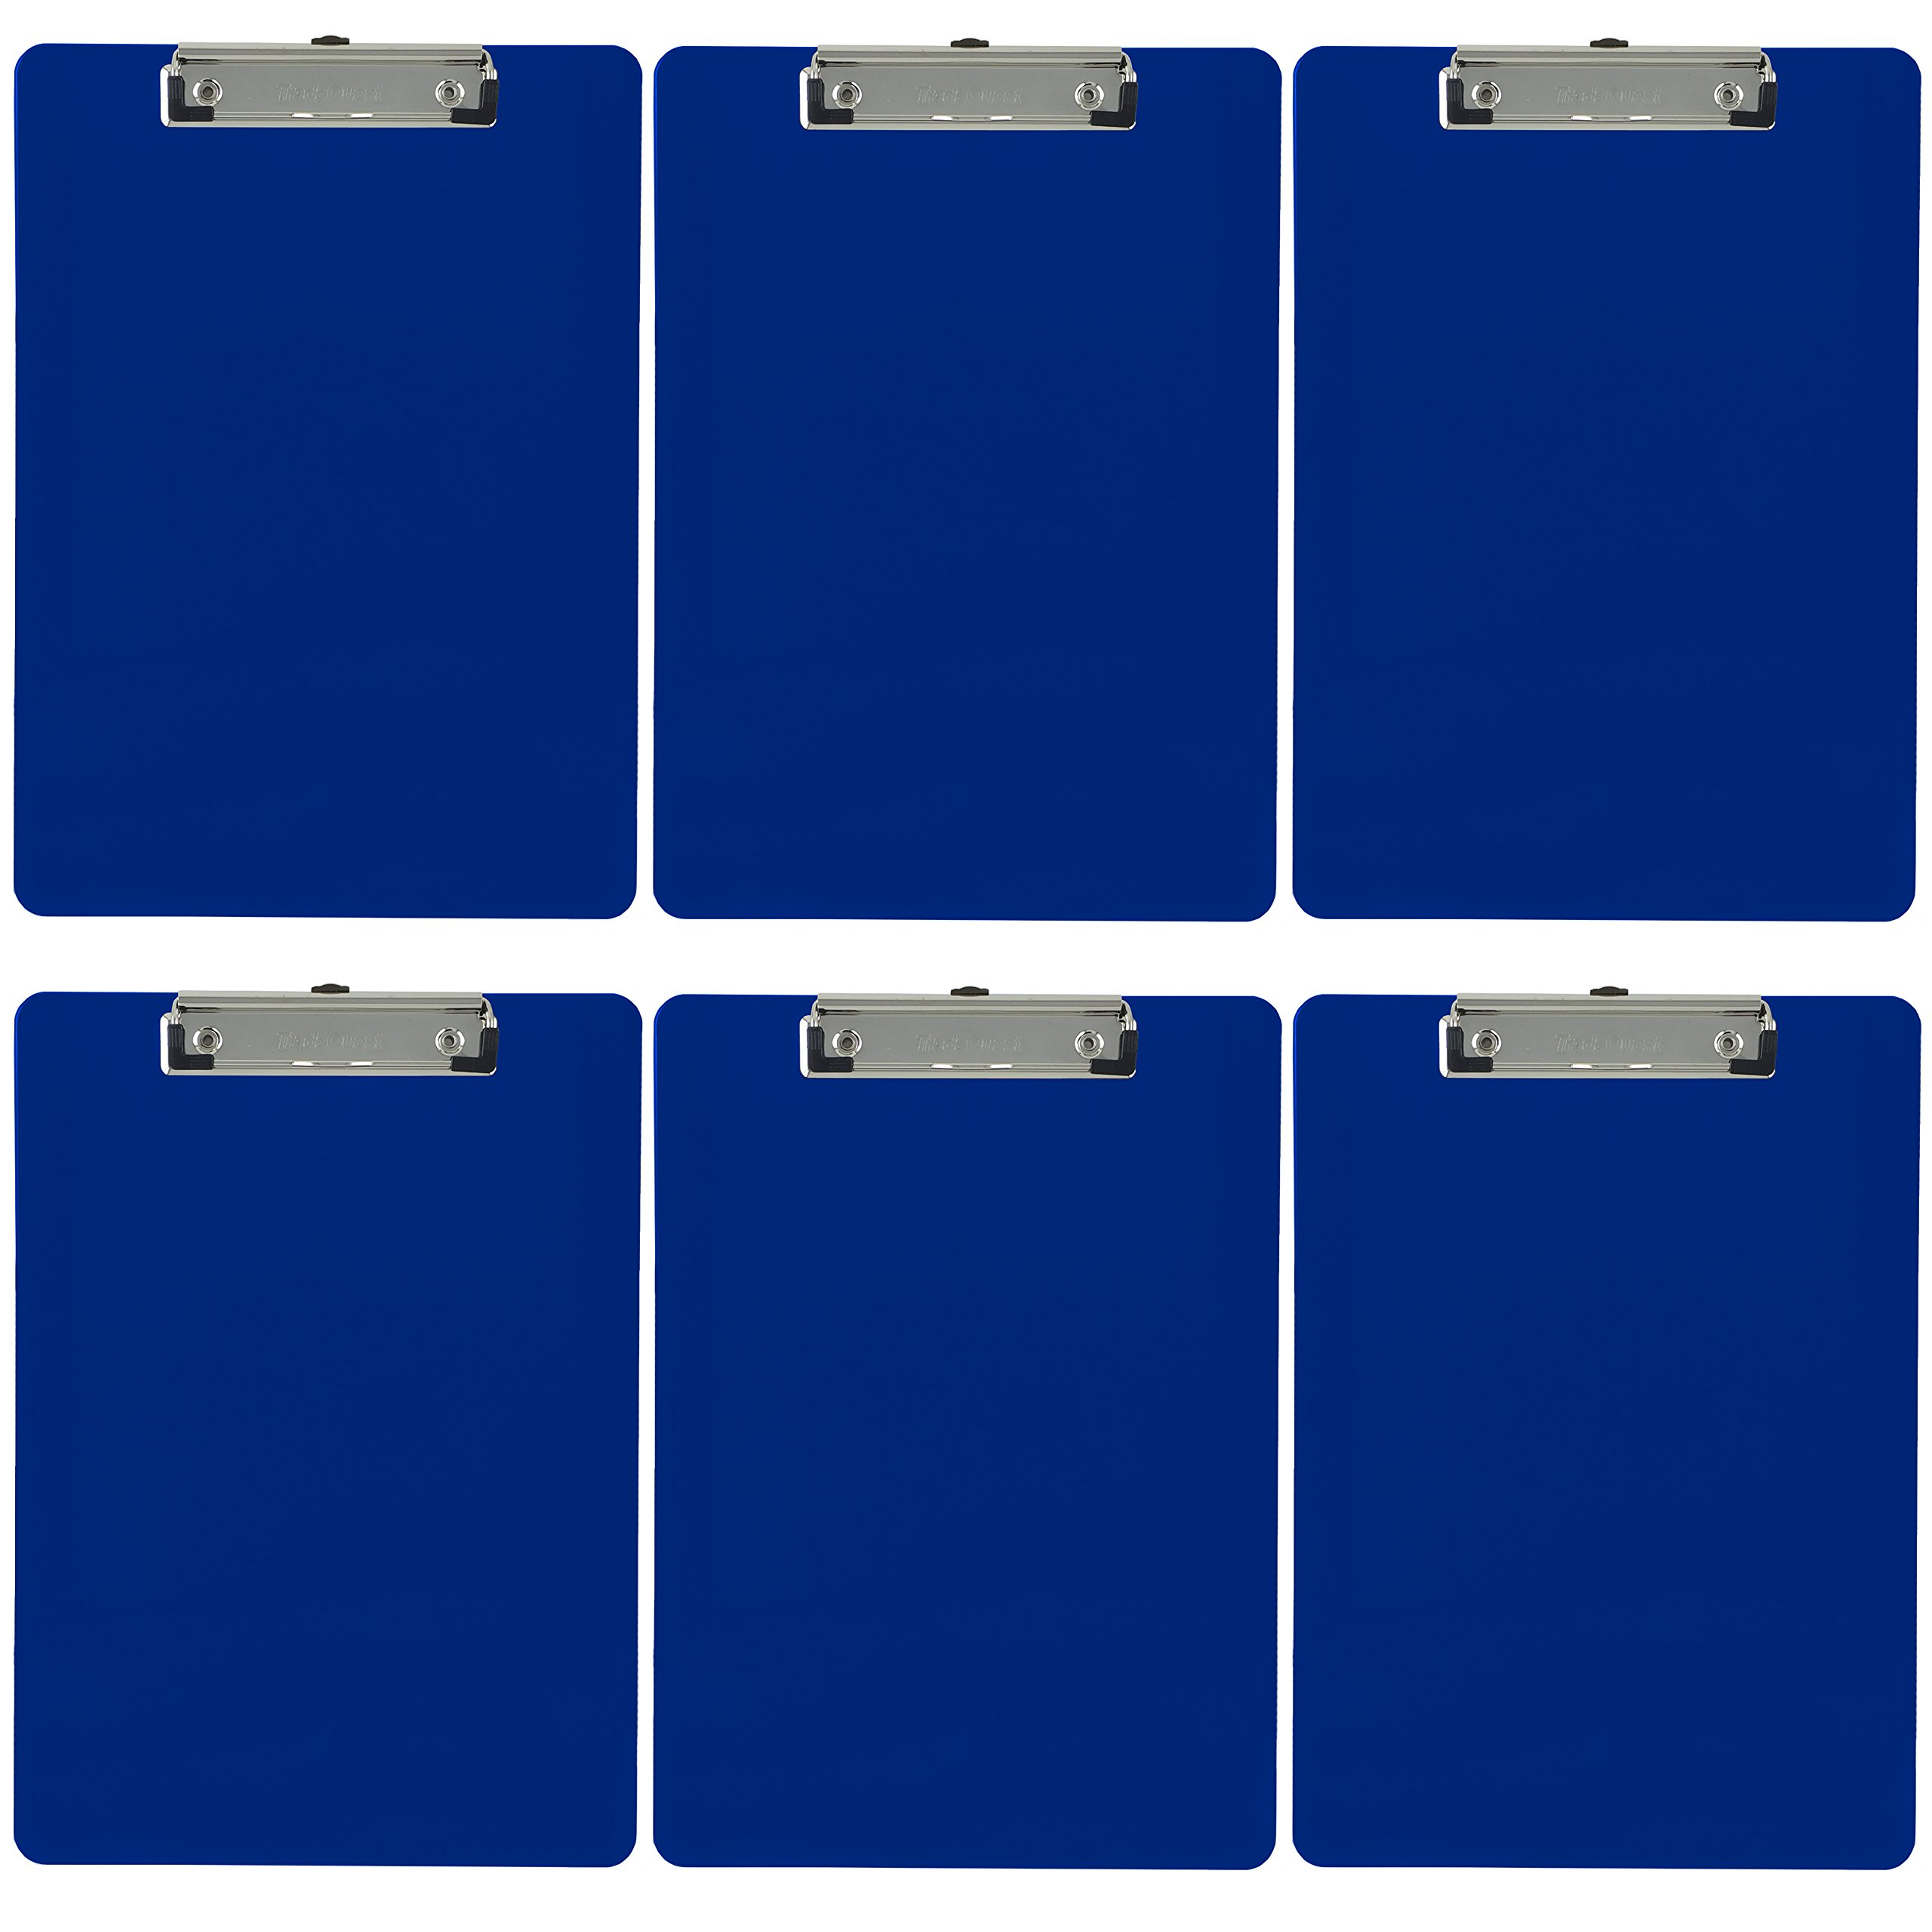 Trade Quest Plastic Clipboard Opaque Color Letter Size Low Profile Clip (Pack of 6) (Dark Blue) by Trade Quest